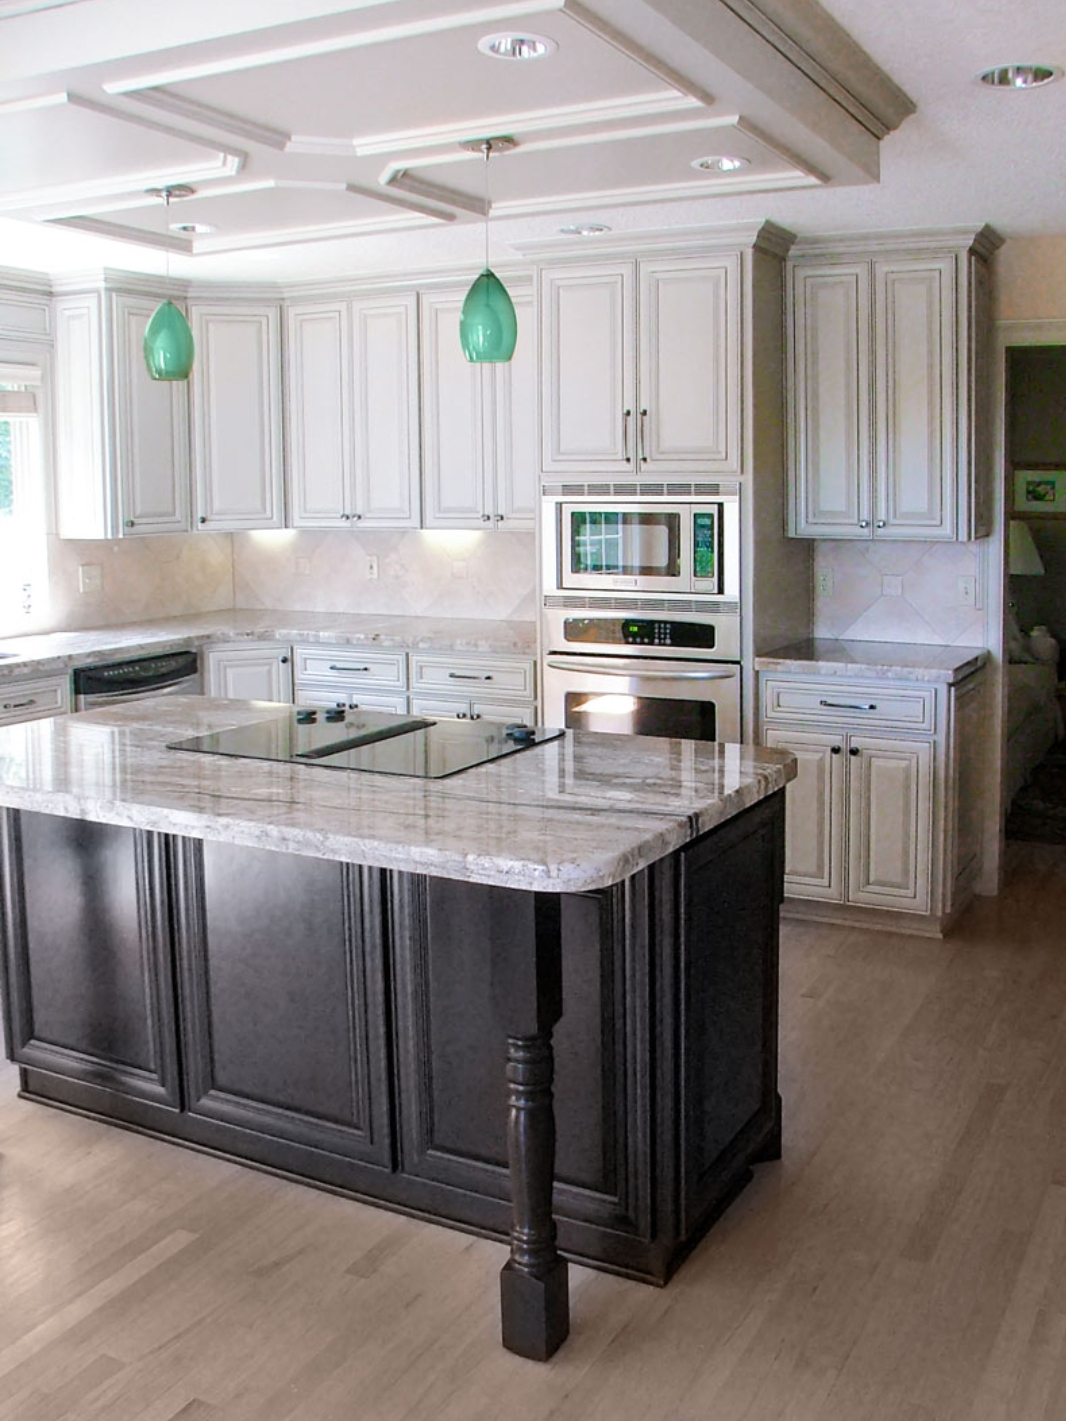 Kitchen Cabinet Refacing Denver Kitchen Cabinet Painting Denver Save You Money - Painting